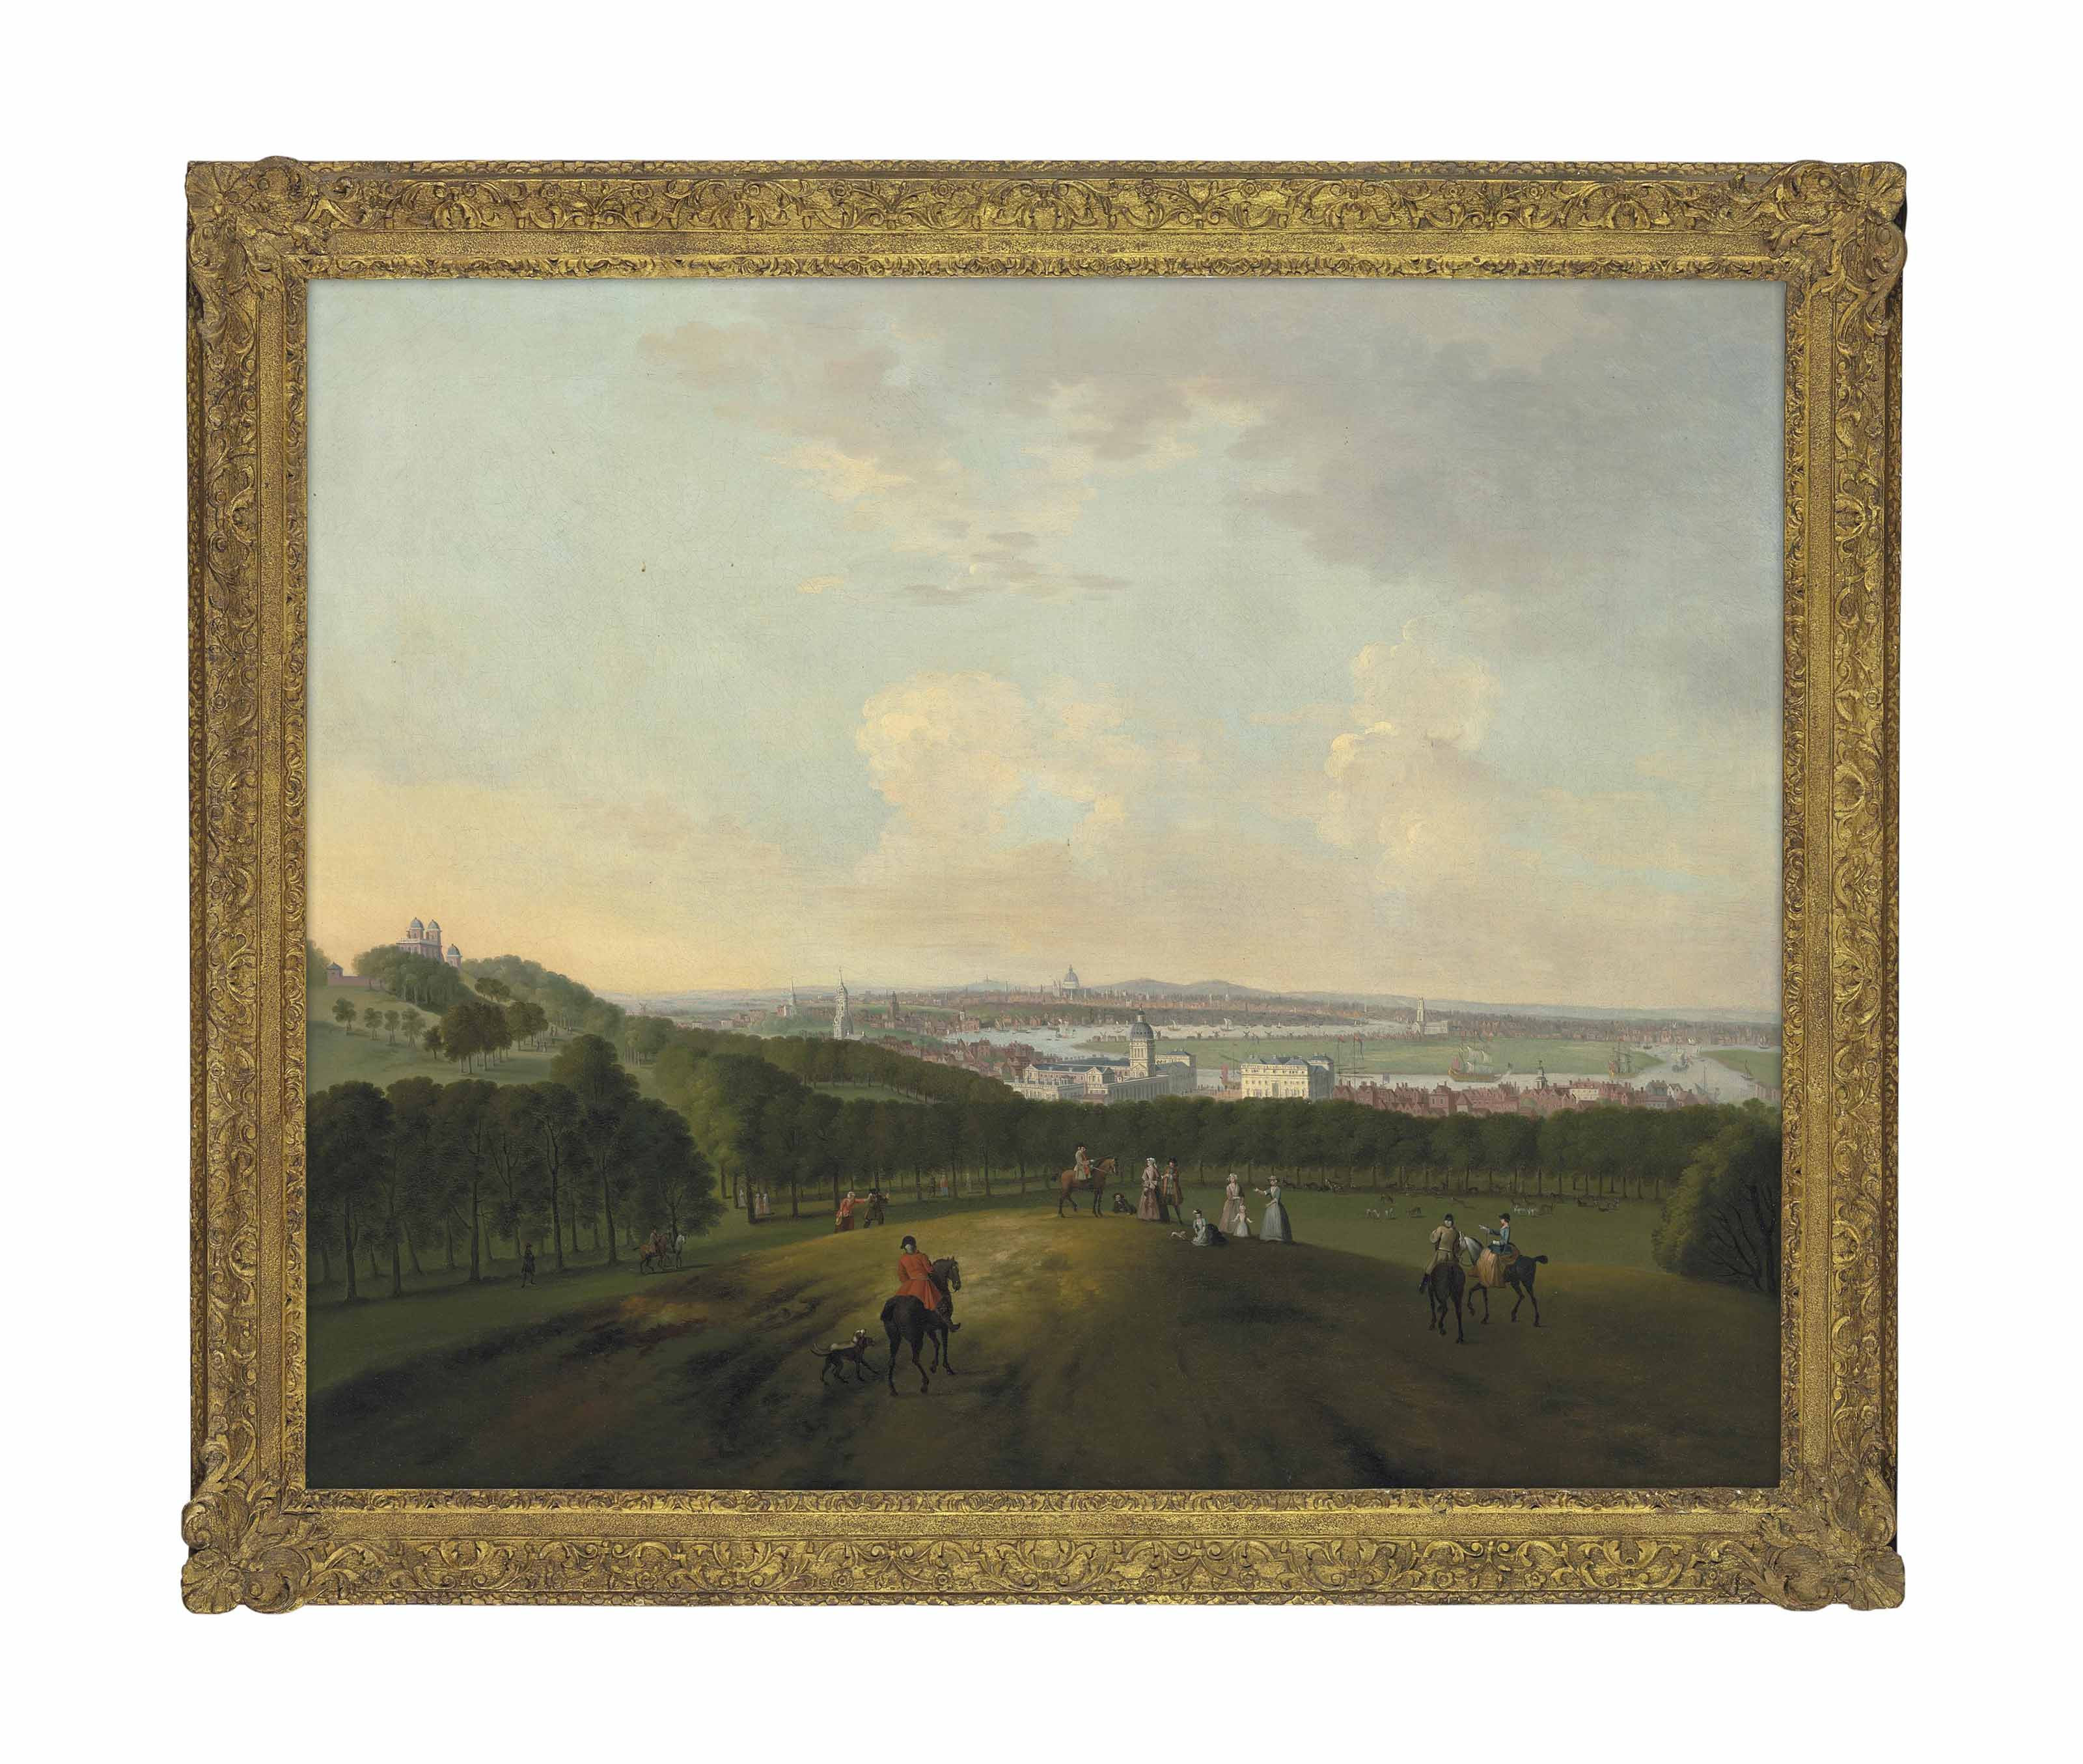 A view of Greenwich, with riders and other figures in the foreground, the Observatory to the left on One Tree Hill, the Thames and London in the distance